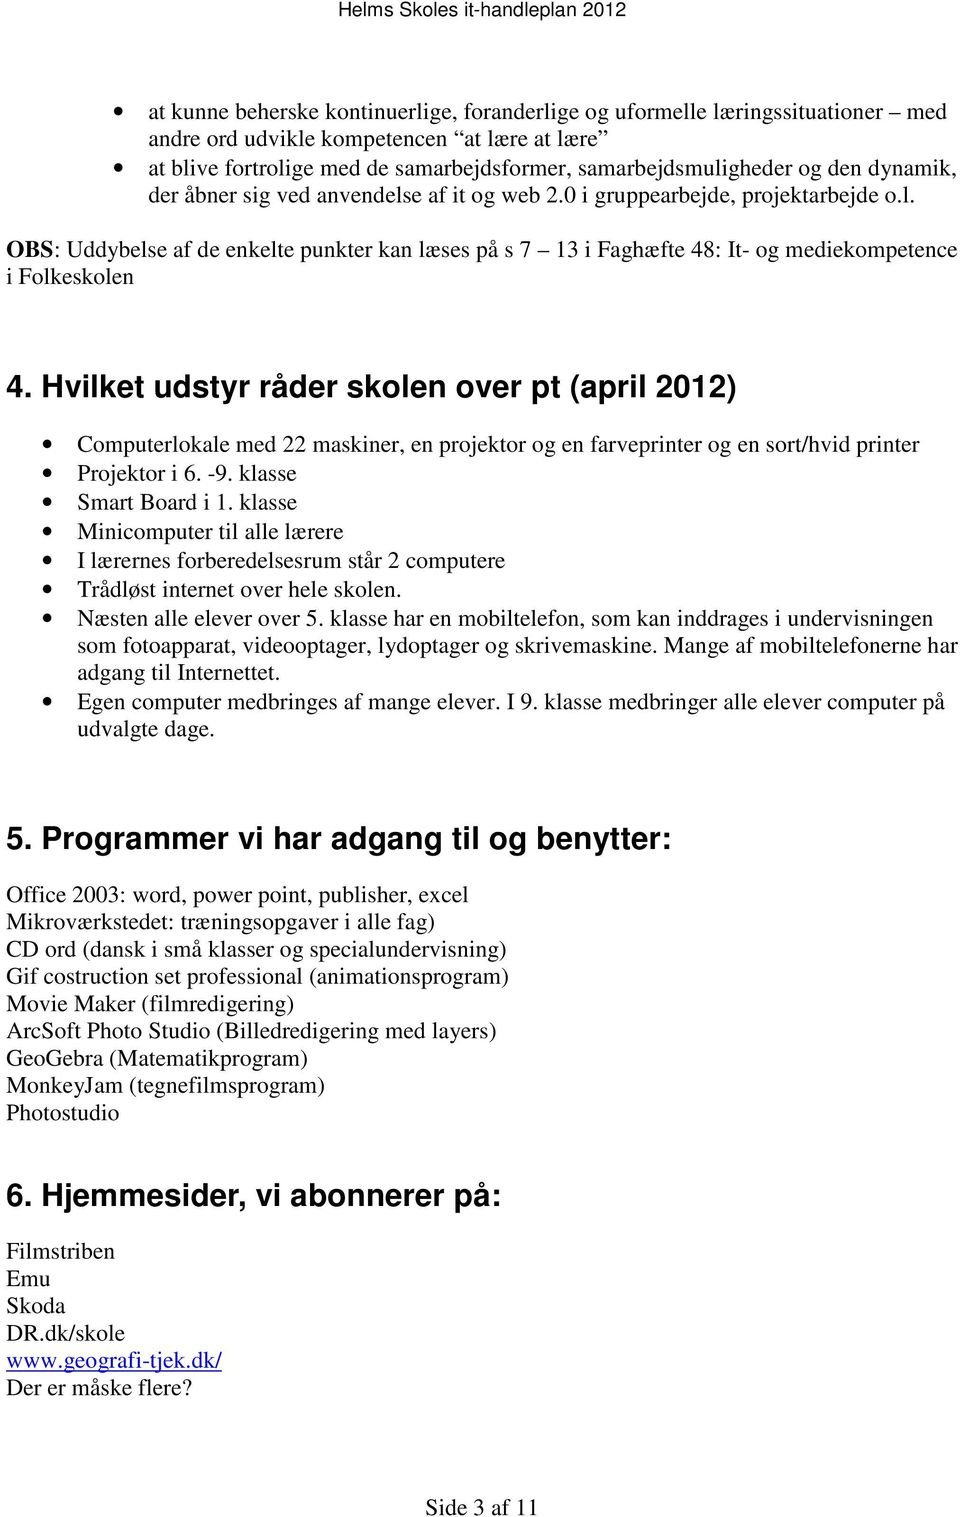 Hvilket udstyr råder skolen over pt (april 2012) Computerlokale med 22 maskiner, en projektor og en farveprinter og en sort/hvid printer Projektor i 6. -9. klasse Smart Board i 1.